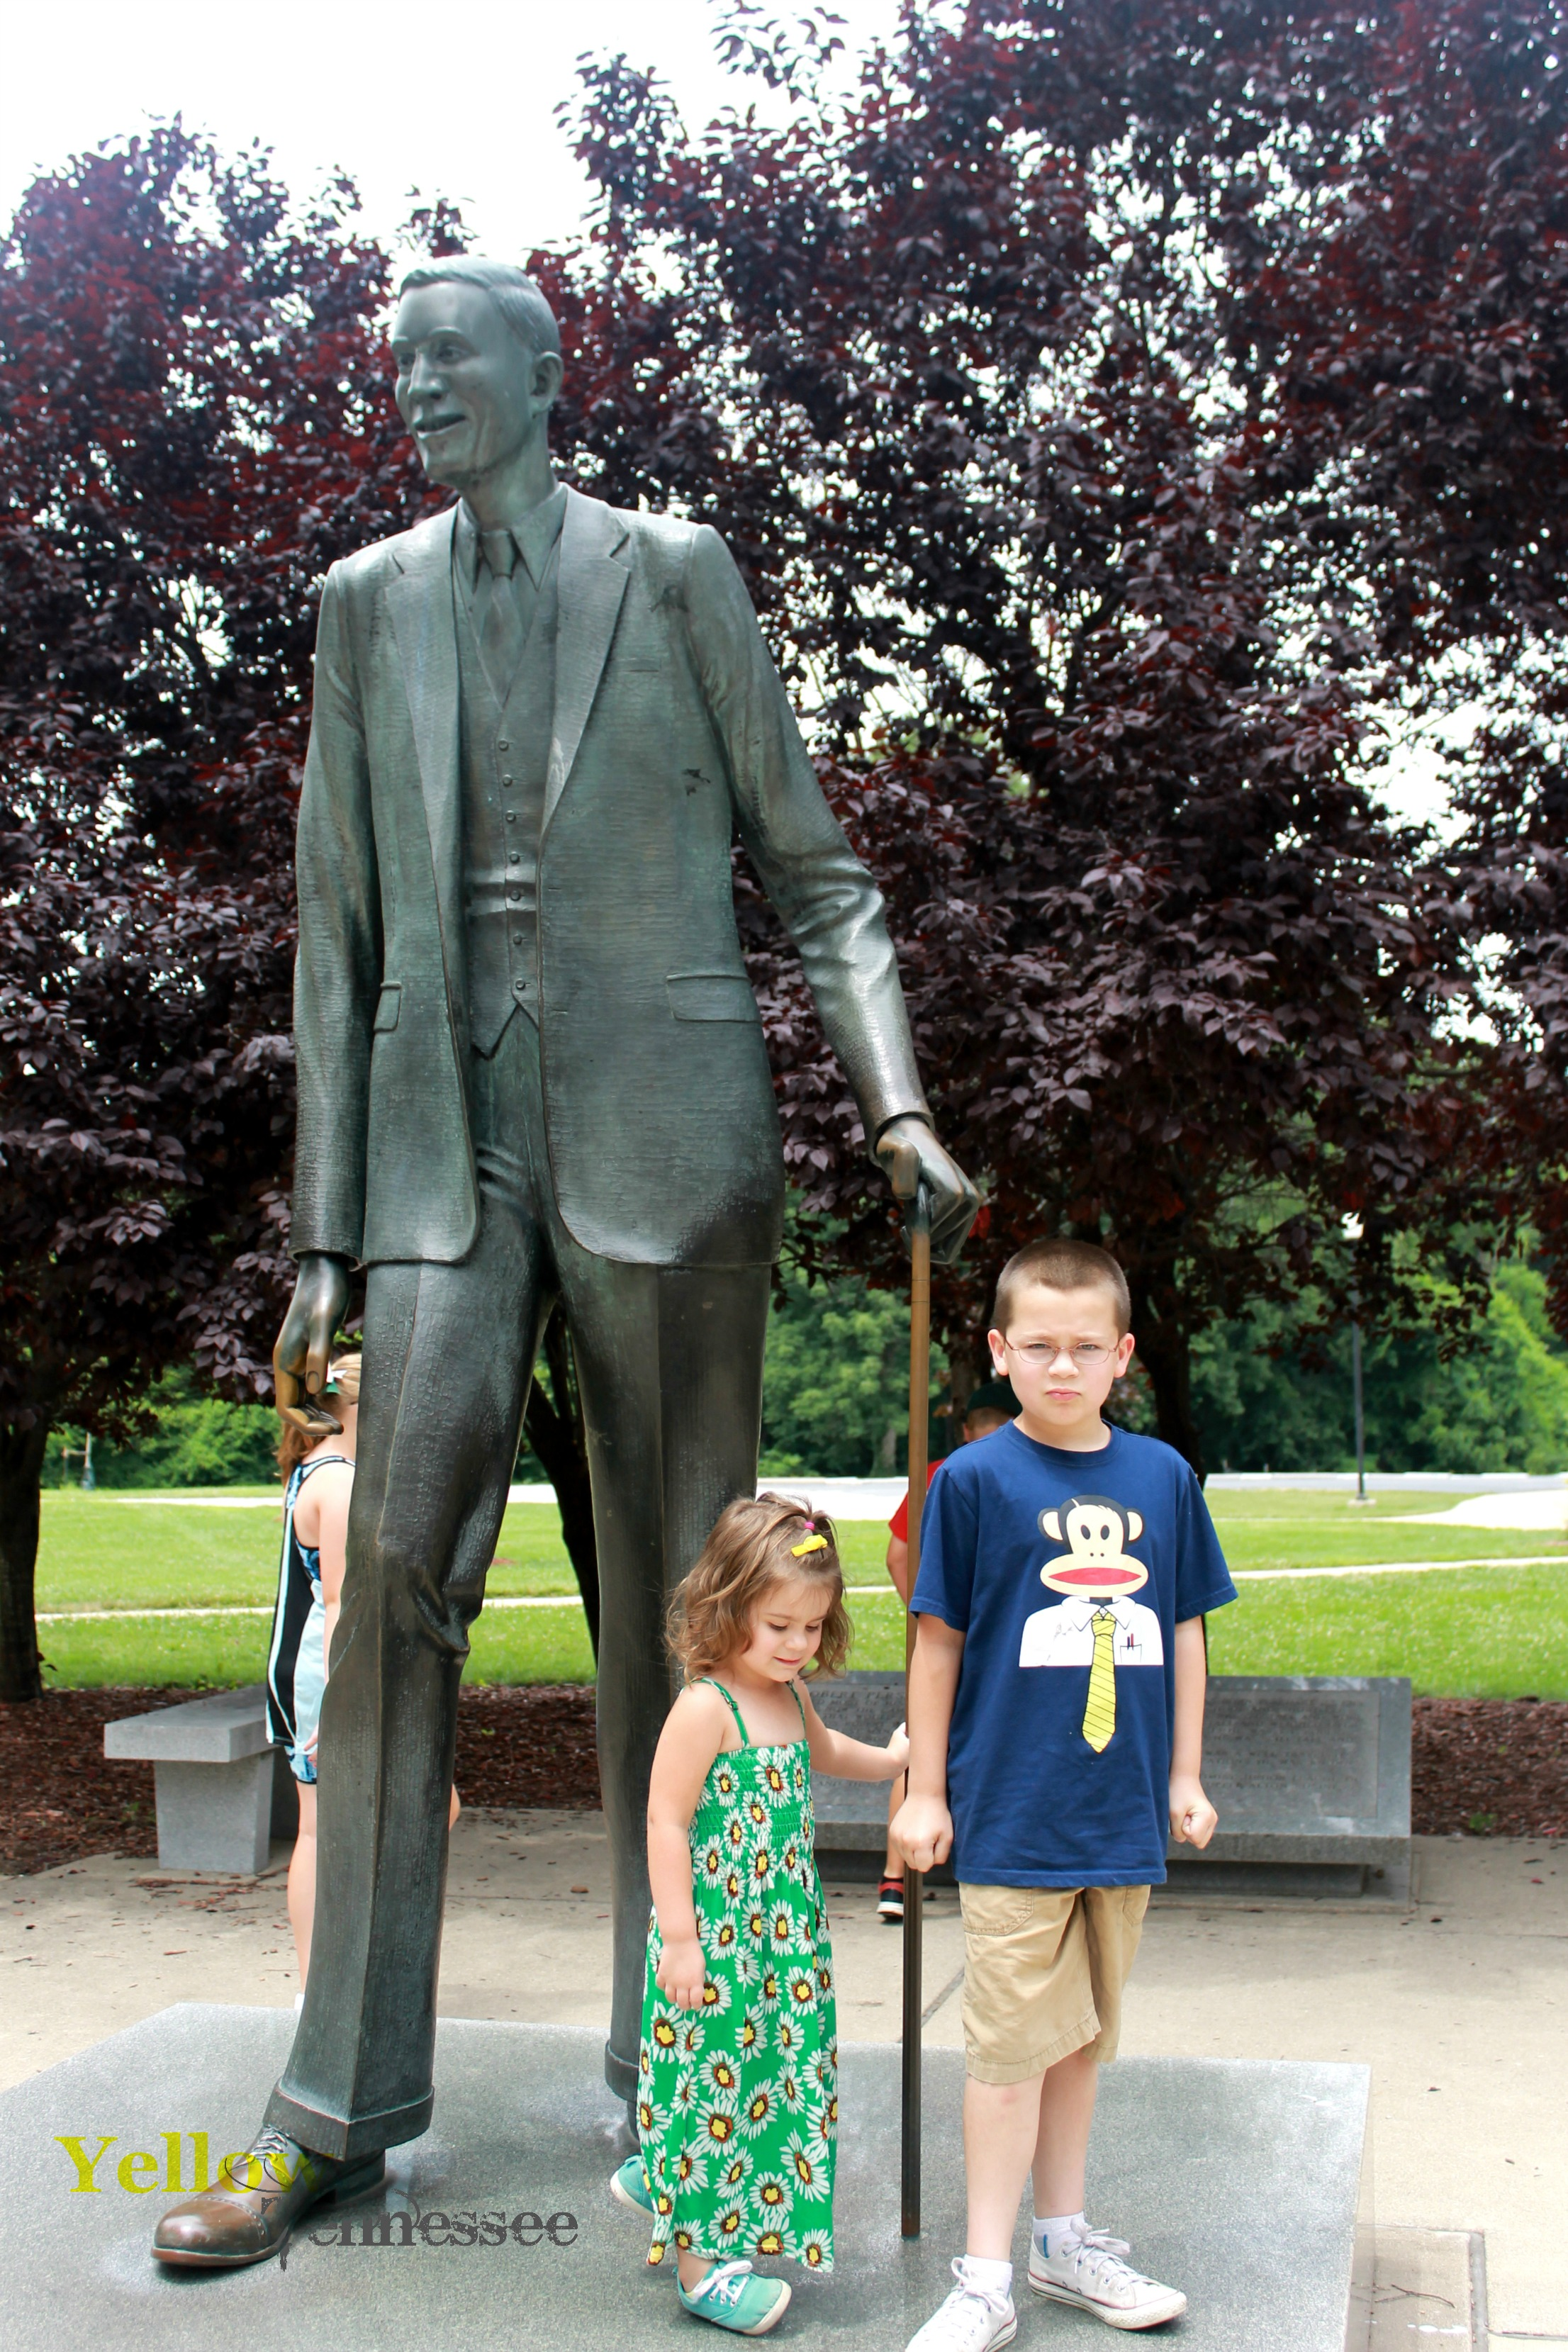 The Gentle Giant Robert Wadlow In Alton Illinois